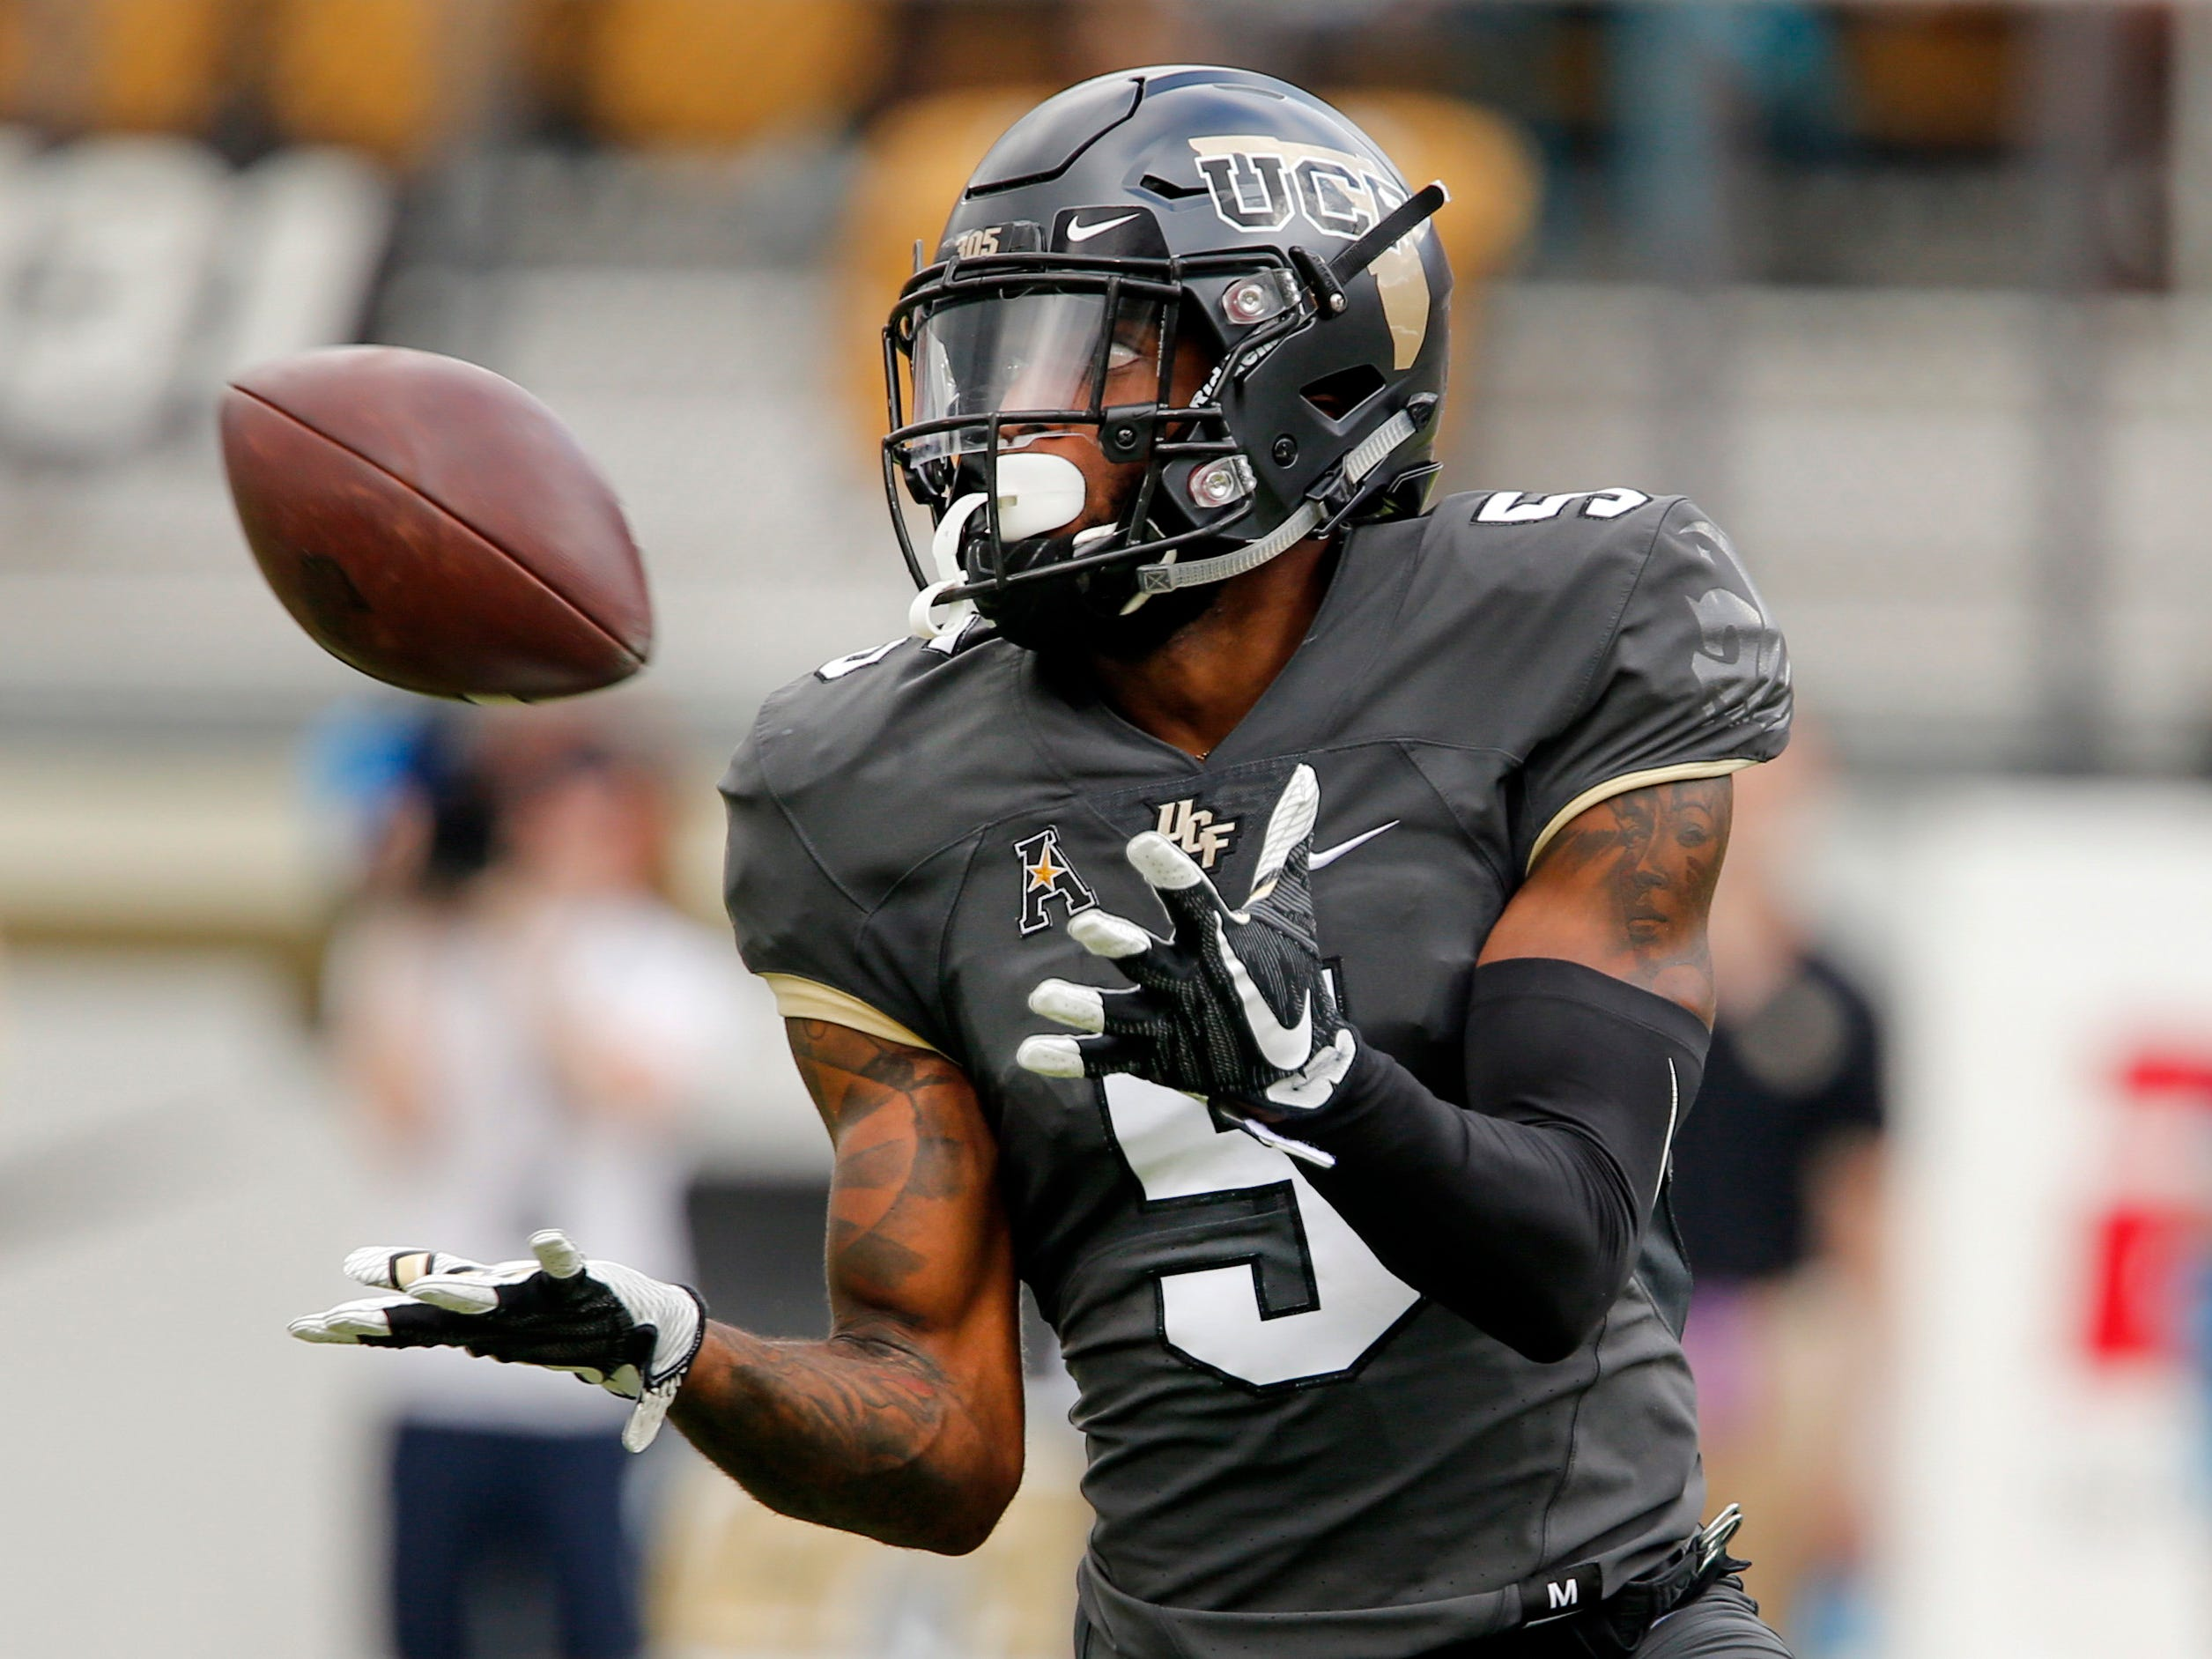 Dredrick Snelson, WR, Central Florida